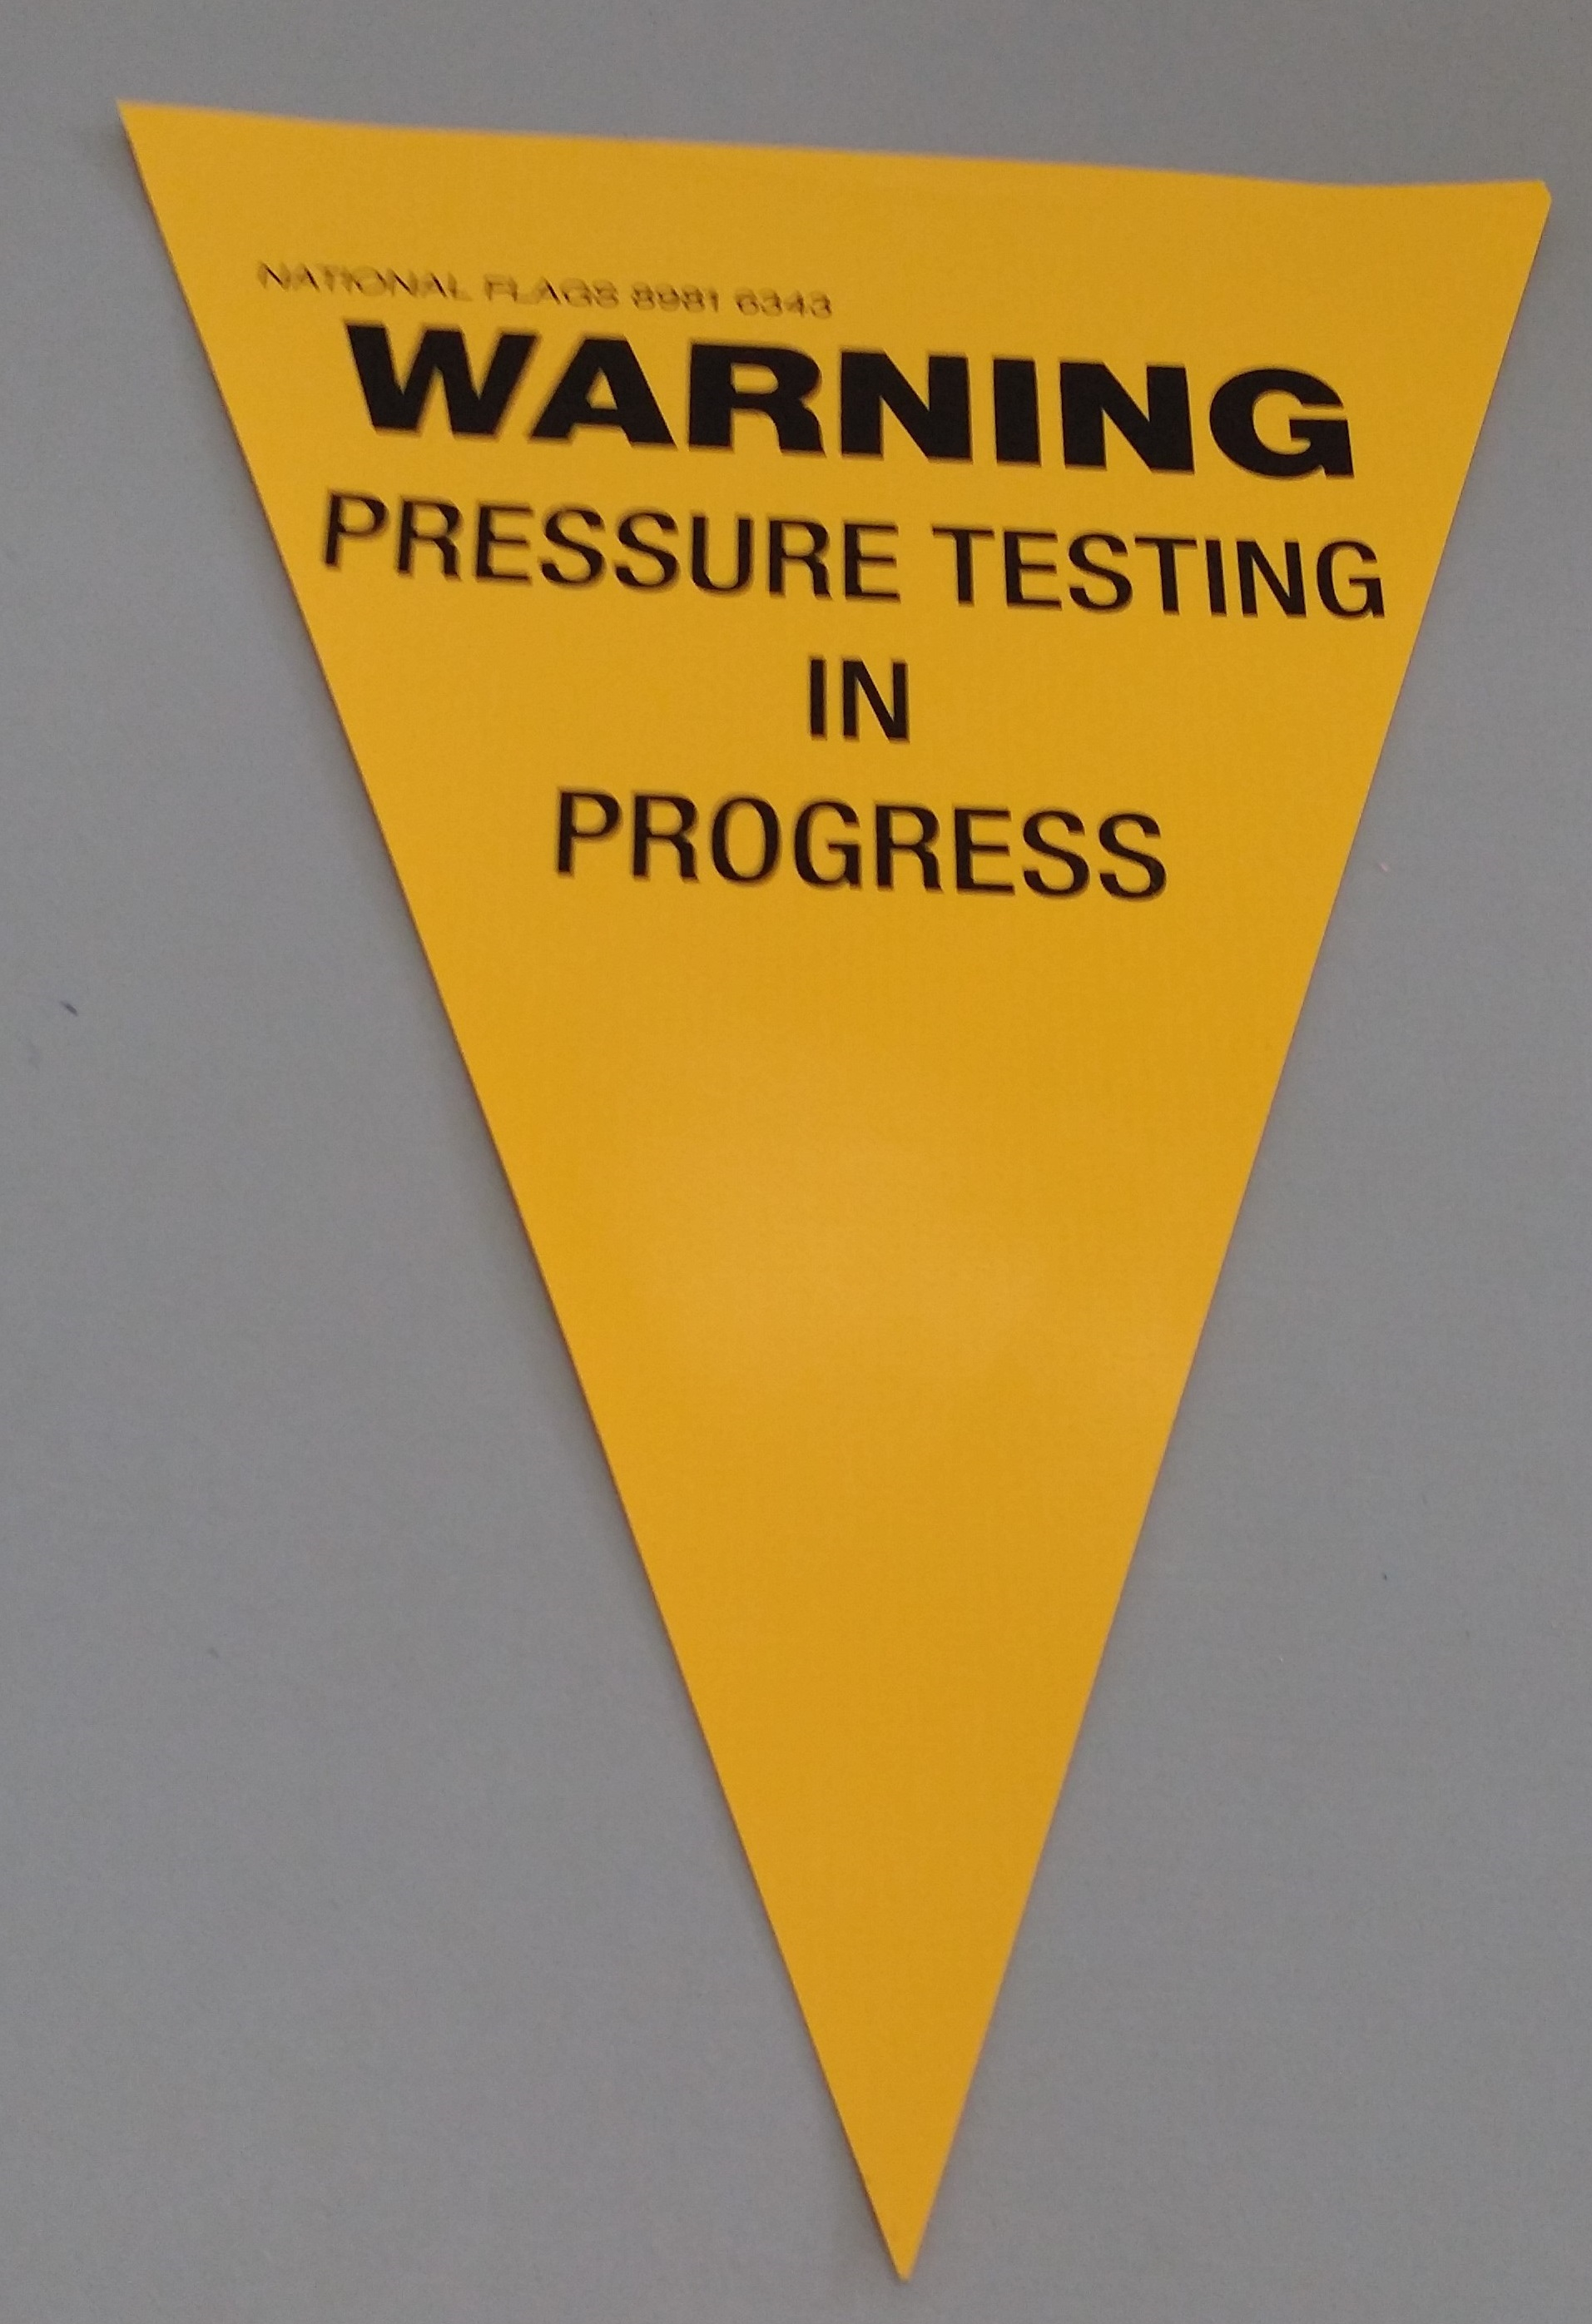 Warning Pressure Testing in Progress(yellow)